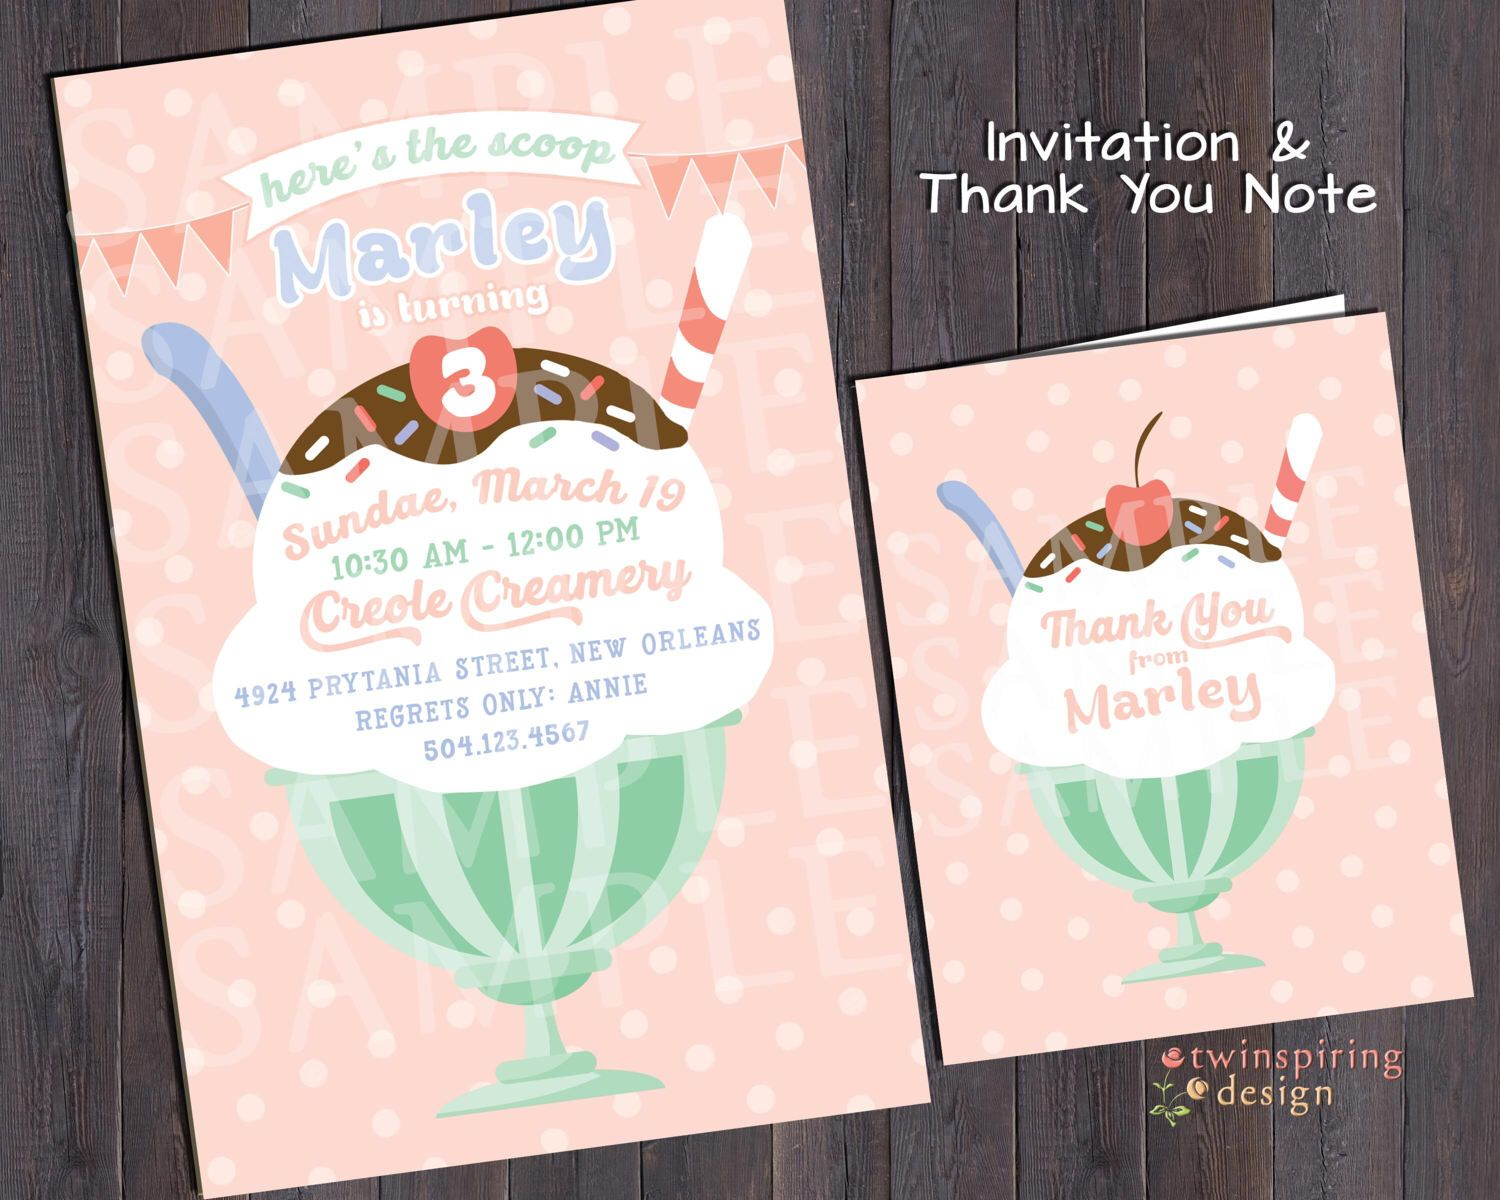 birthday party invitations printable%0A Ice Cream Sundae Birthday Party Invitation and or Thank You Notes  Boy or  Girl Color Schemes